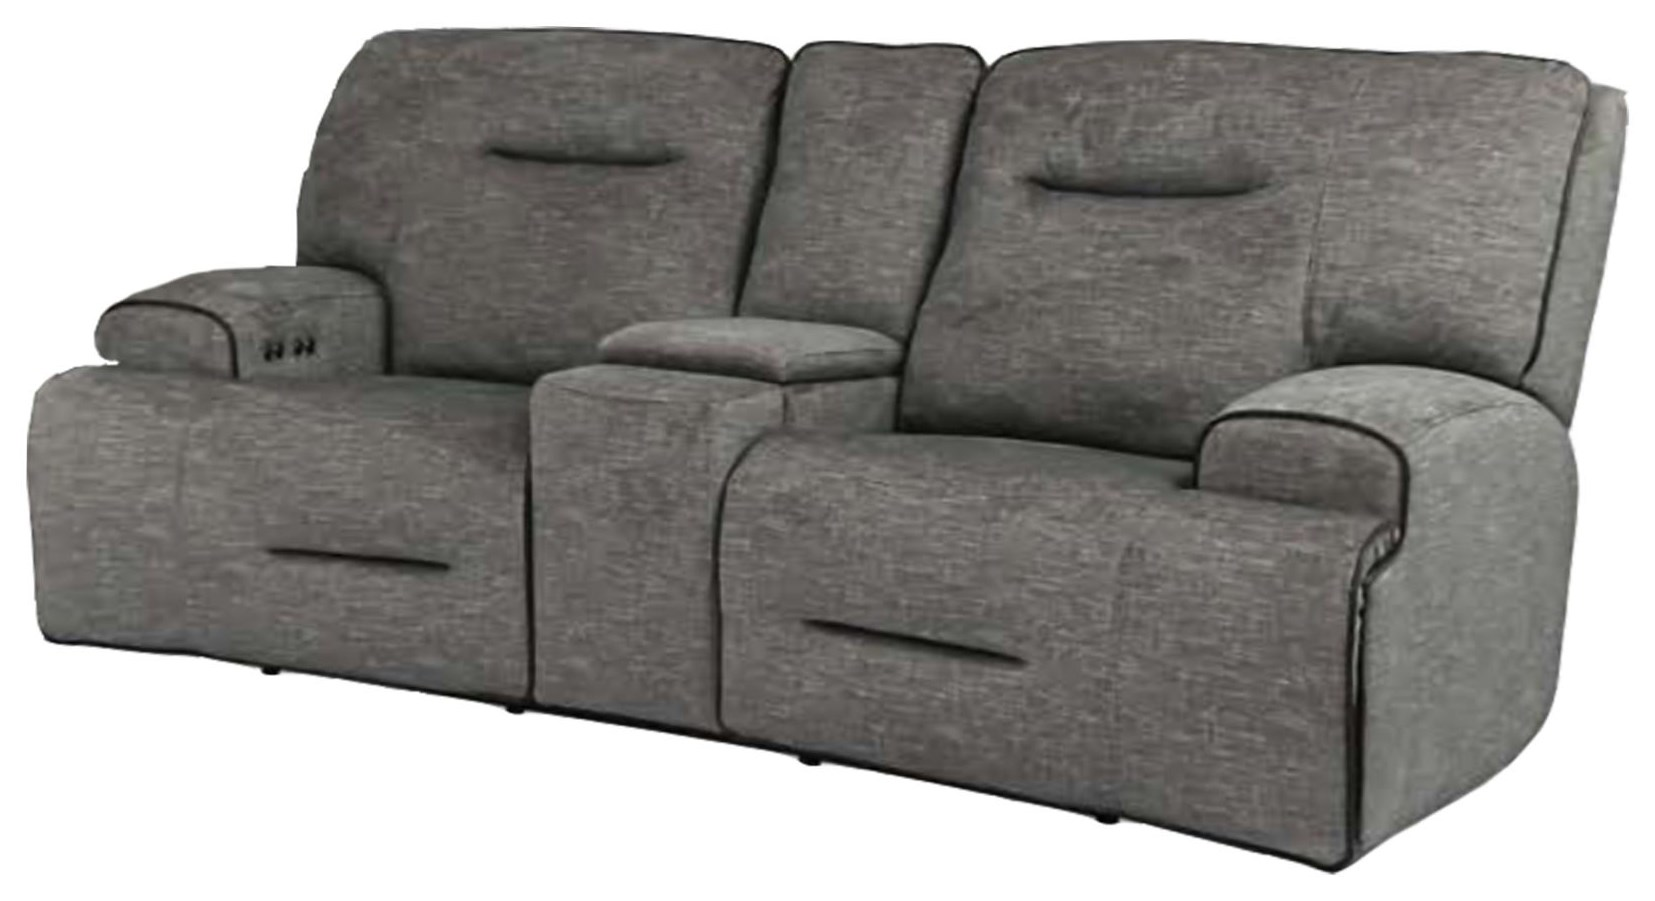 90016 Power Reclining Loveseat with Power Headrest by Cheers at Beck's Furniture